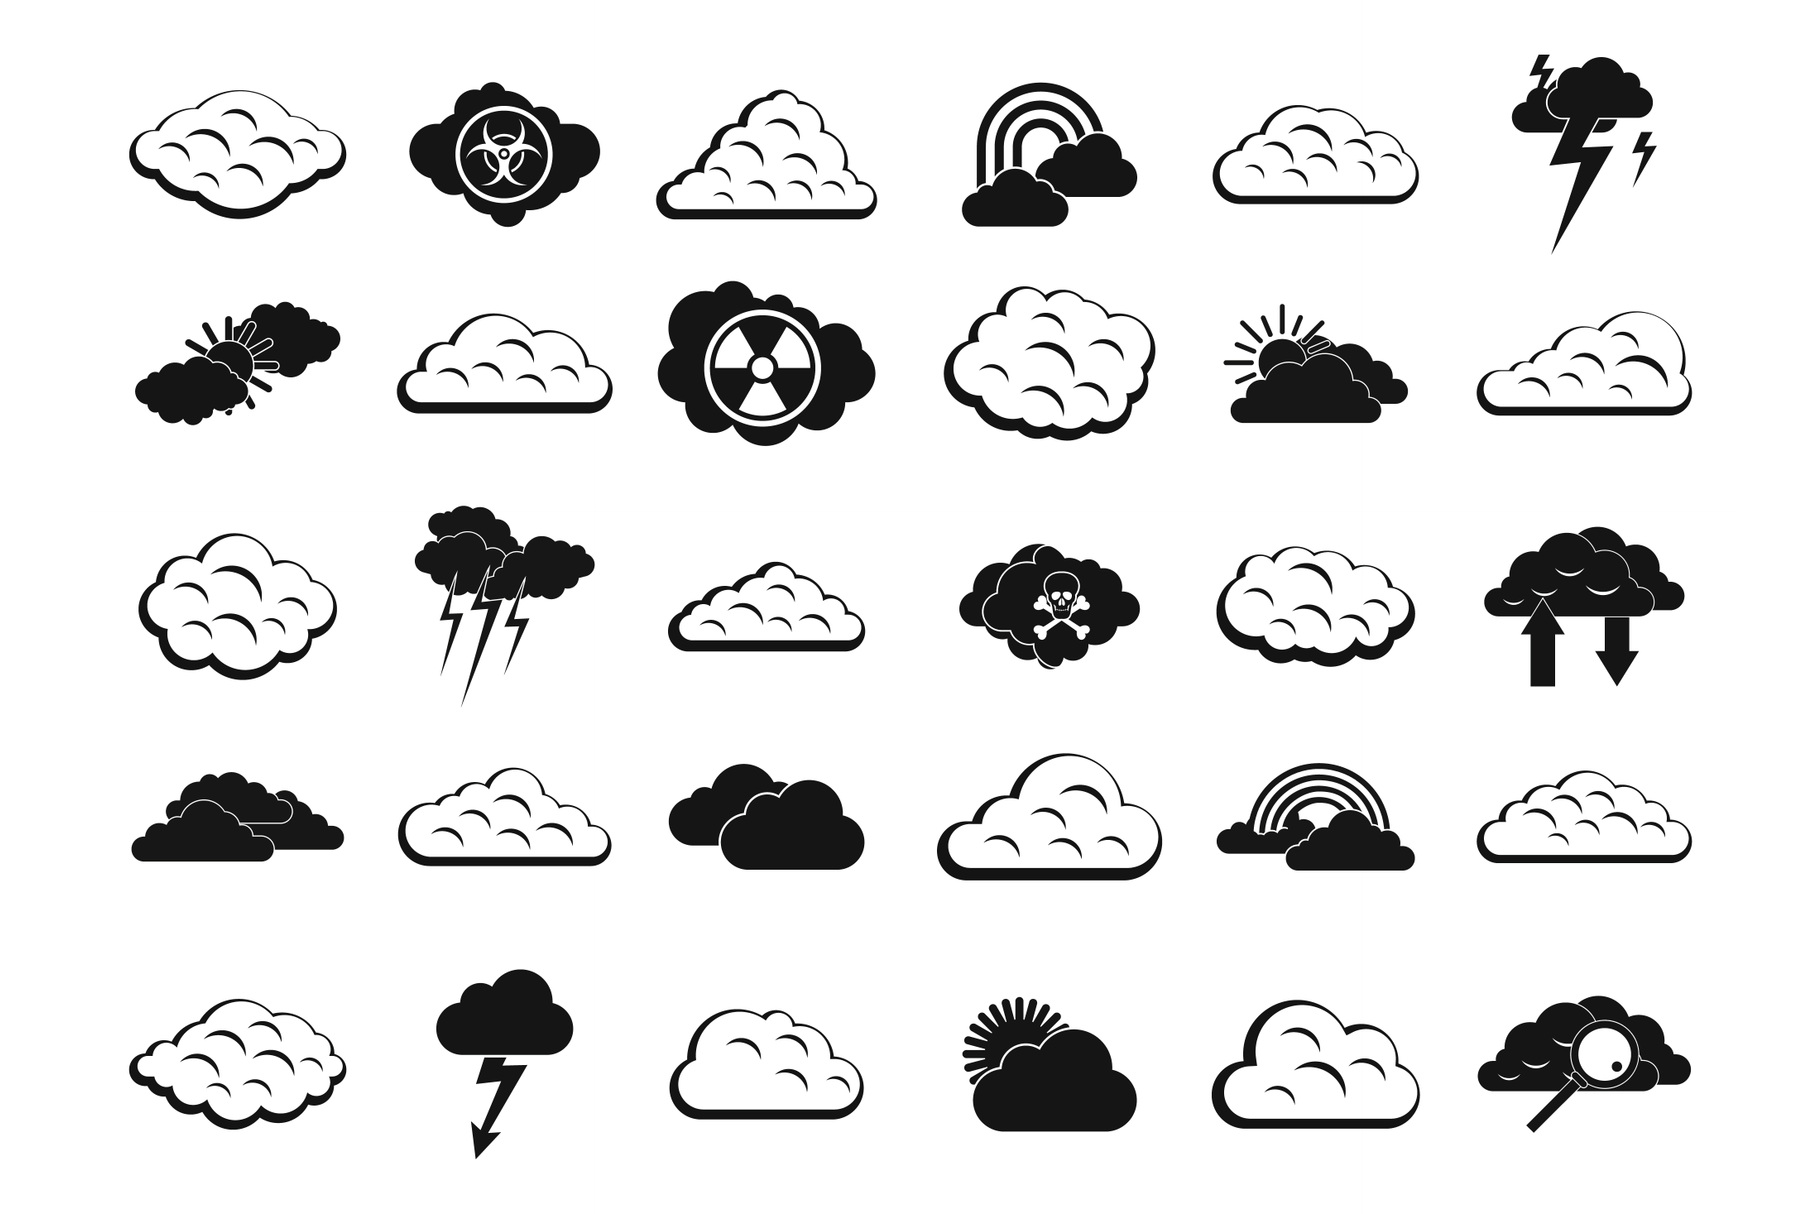 Cloud icon set, simple style example image 1